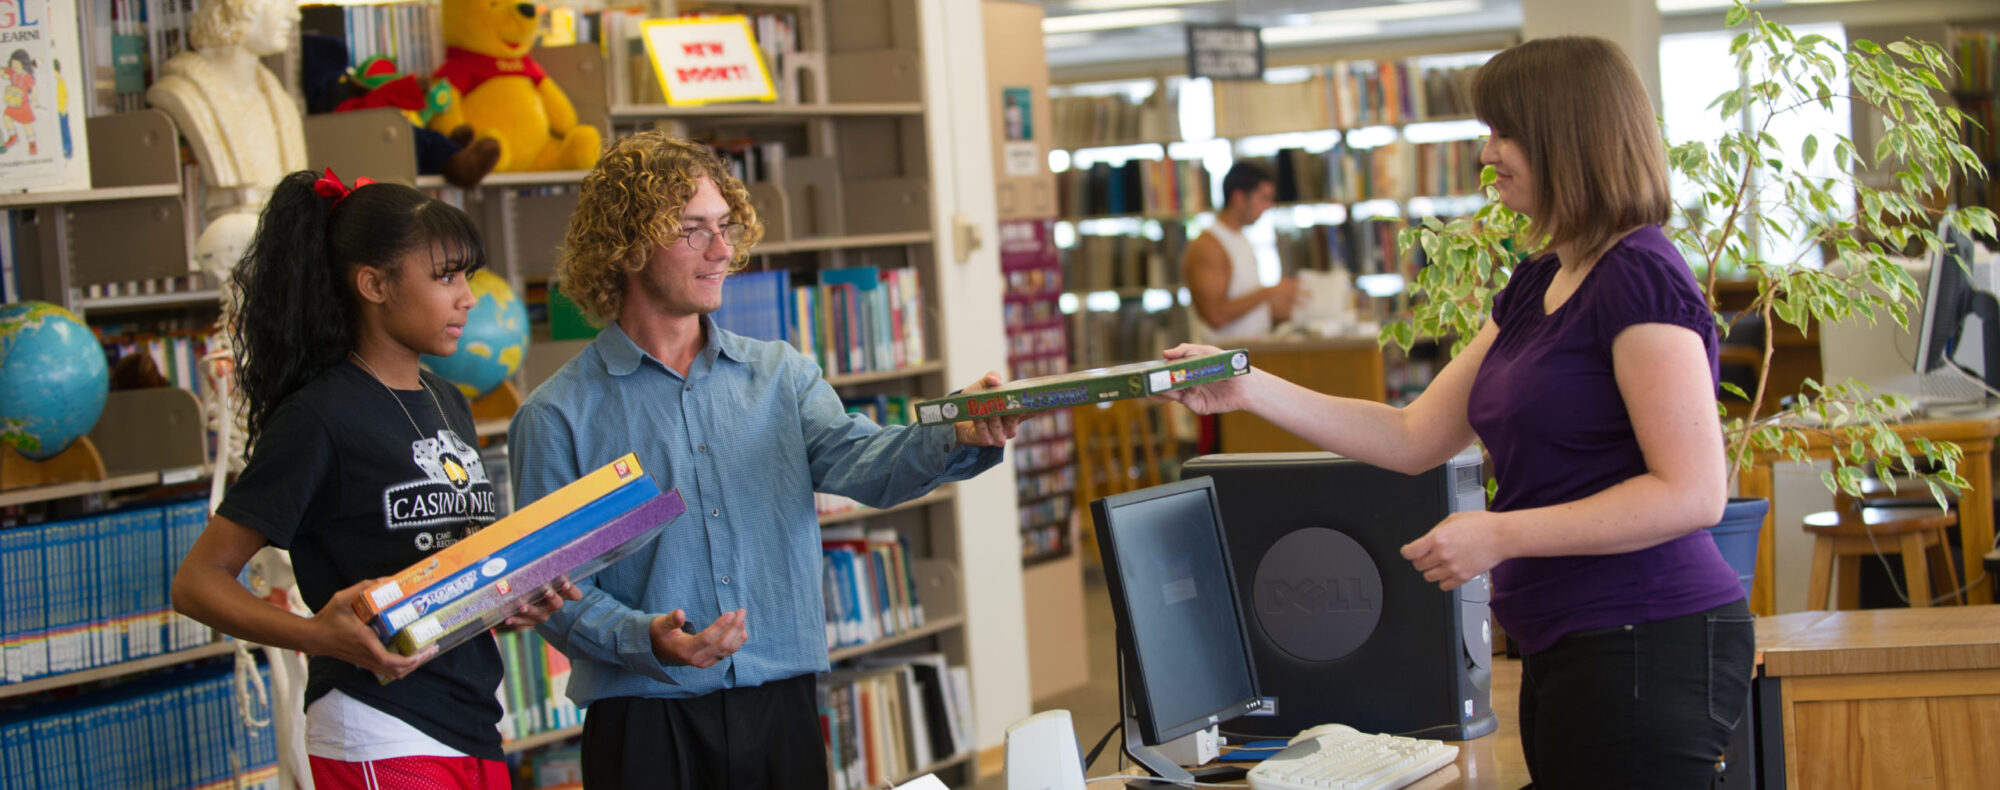 Librarian checking out books for two students